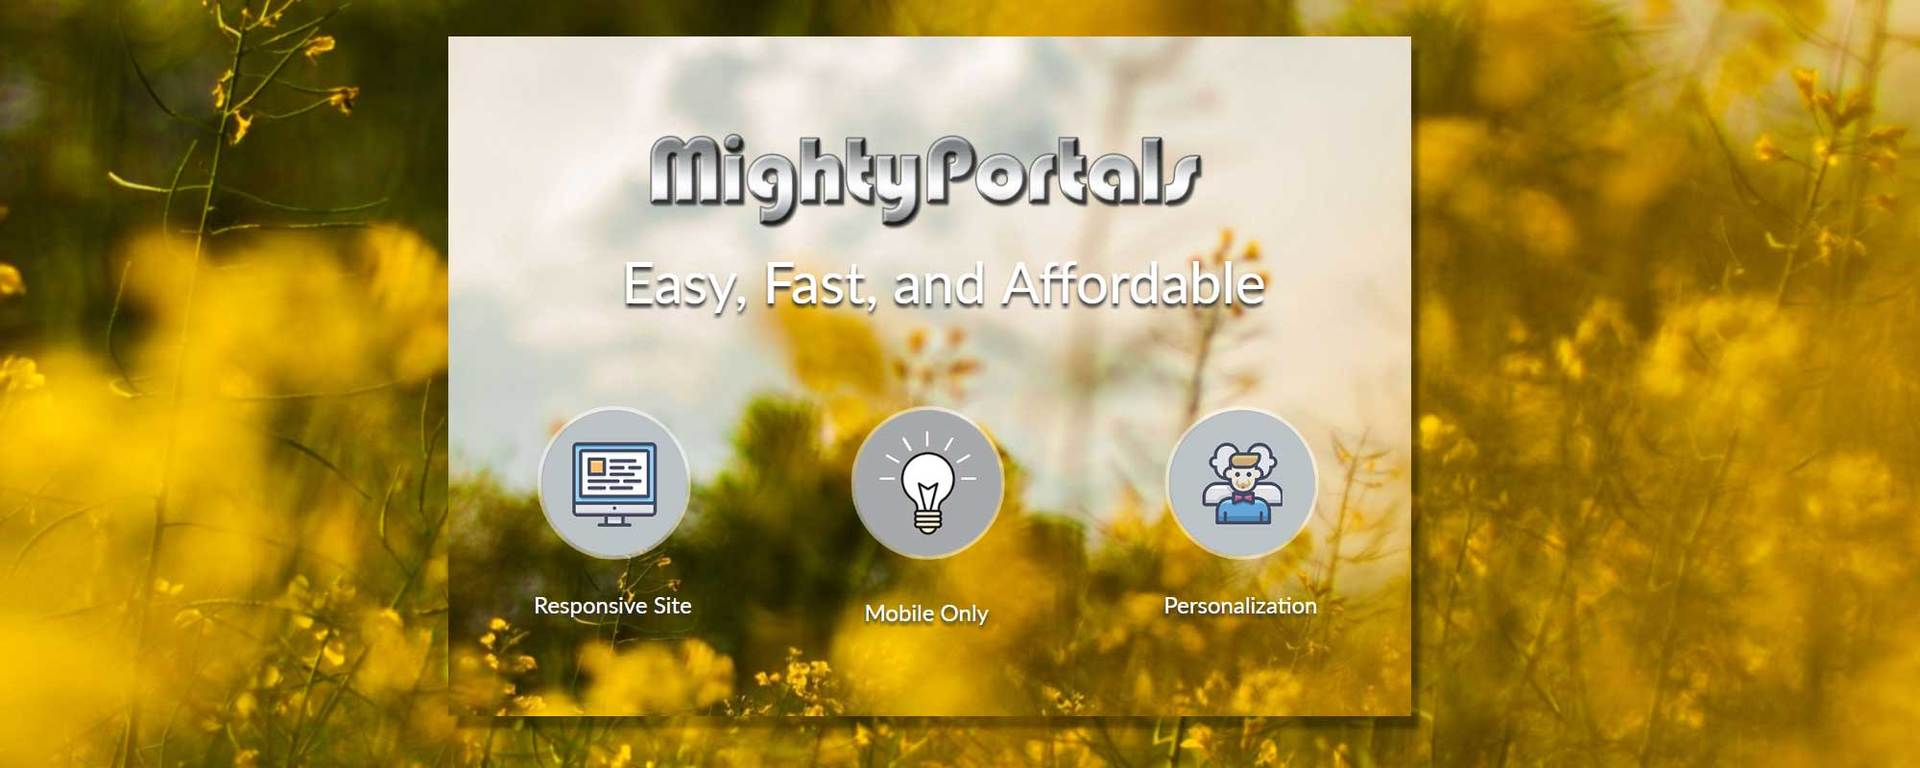 Mighty Portals - Fast, Efficient, Affordable